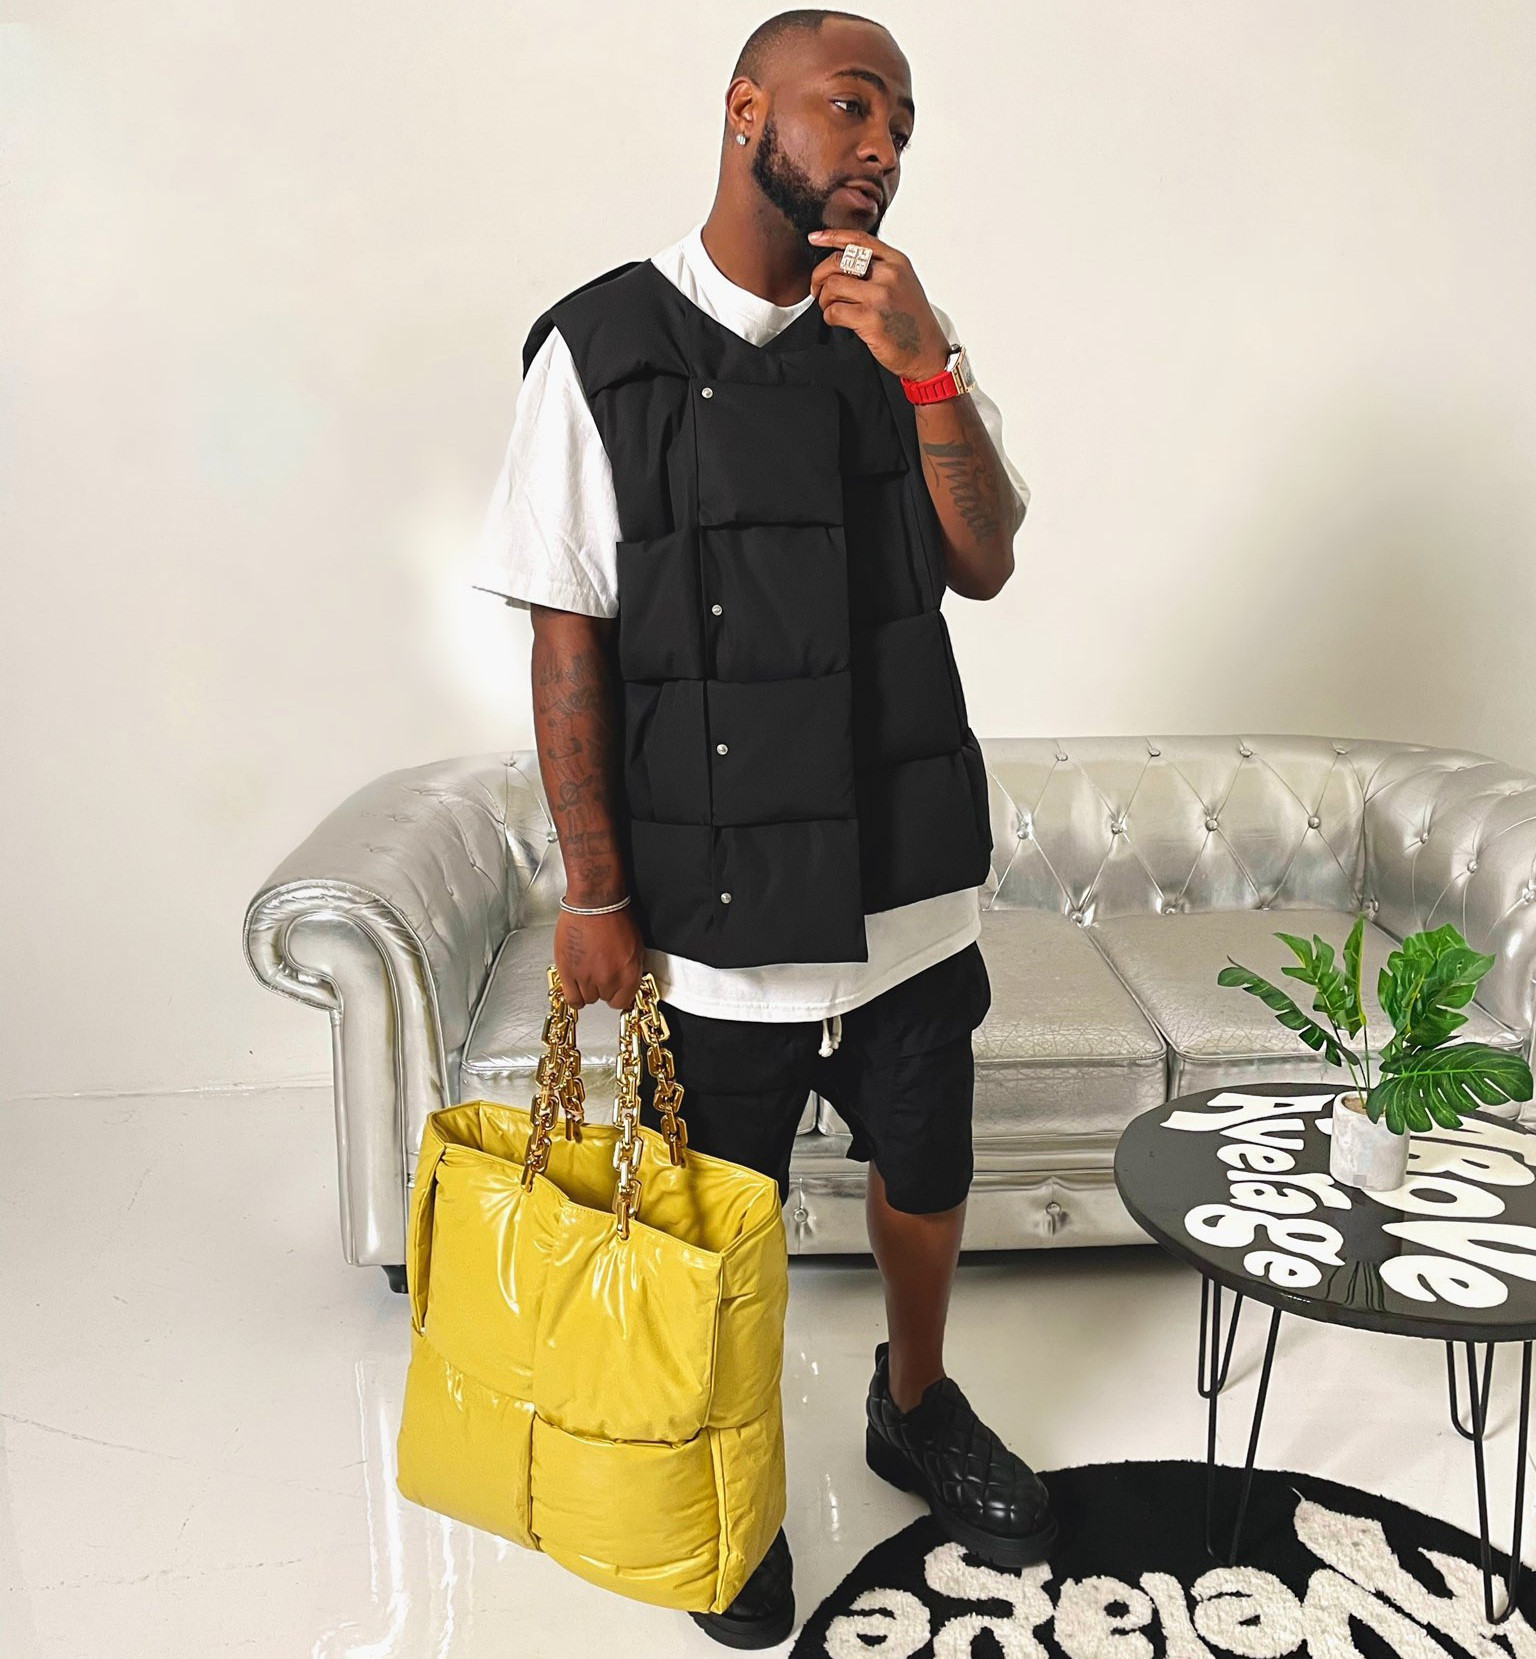 Davido reacts as it's revealed that a man who recently styled him used to bash him and his music years ago